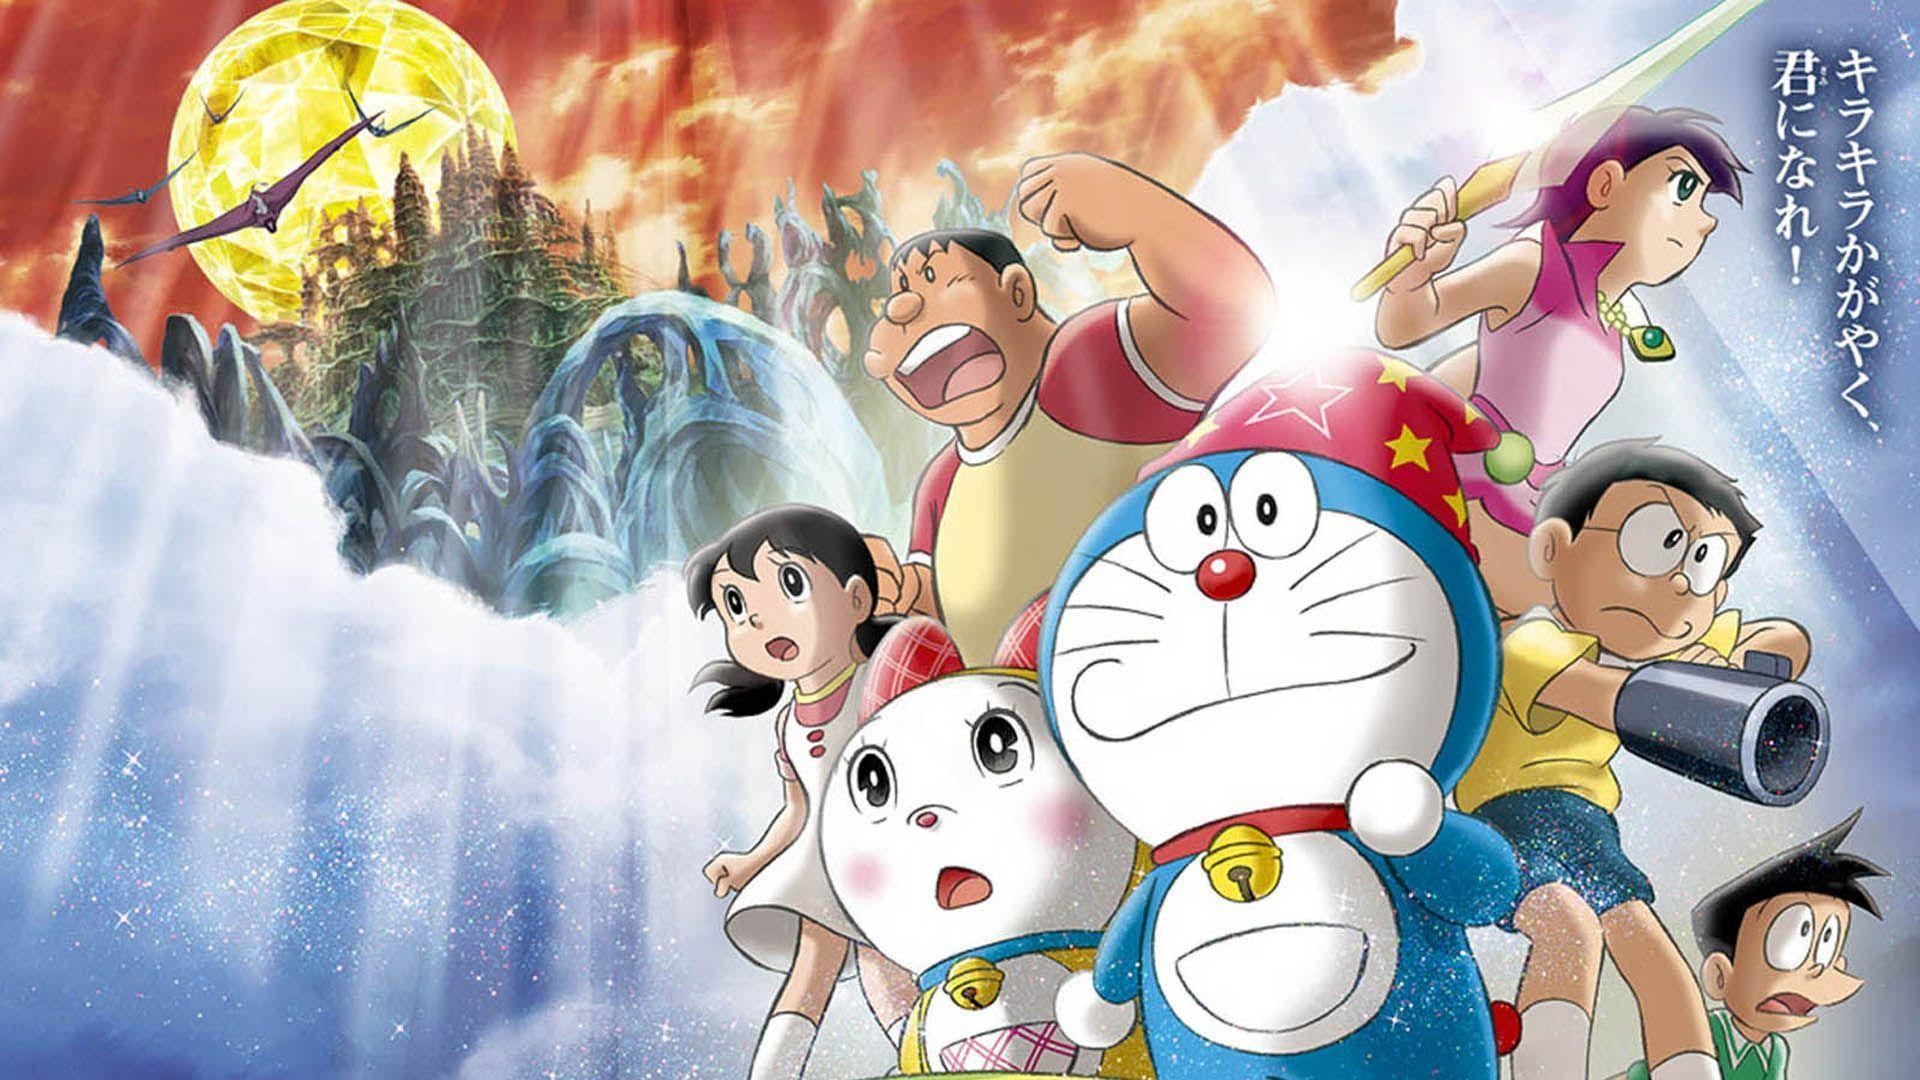 Doraemon 3d Wallpapers 2015 Free Pictures On Greepx